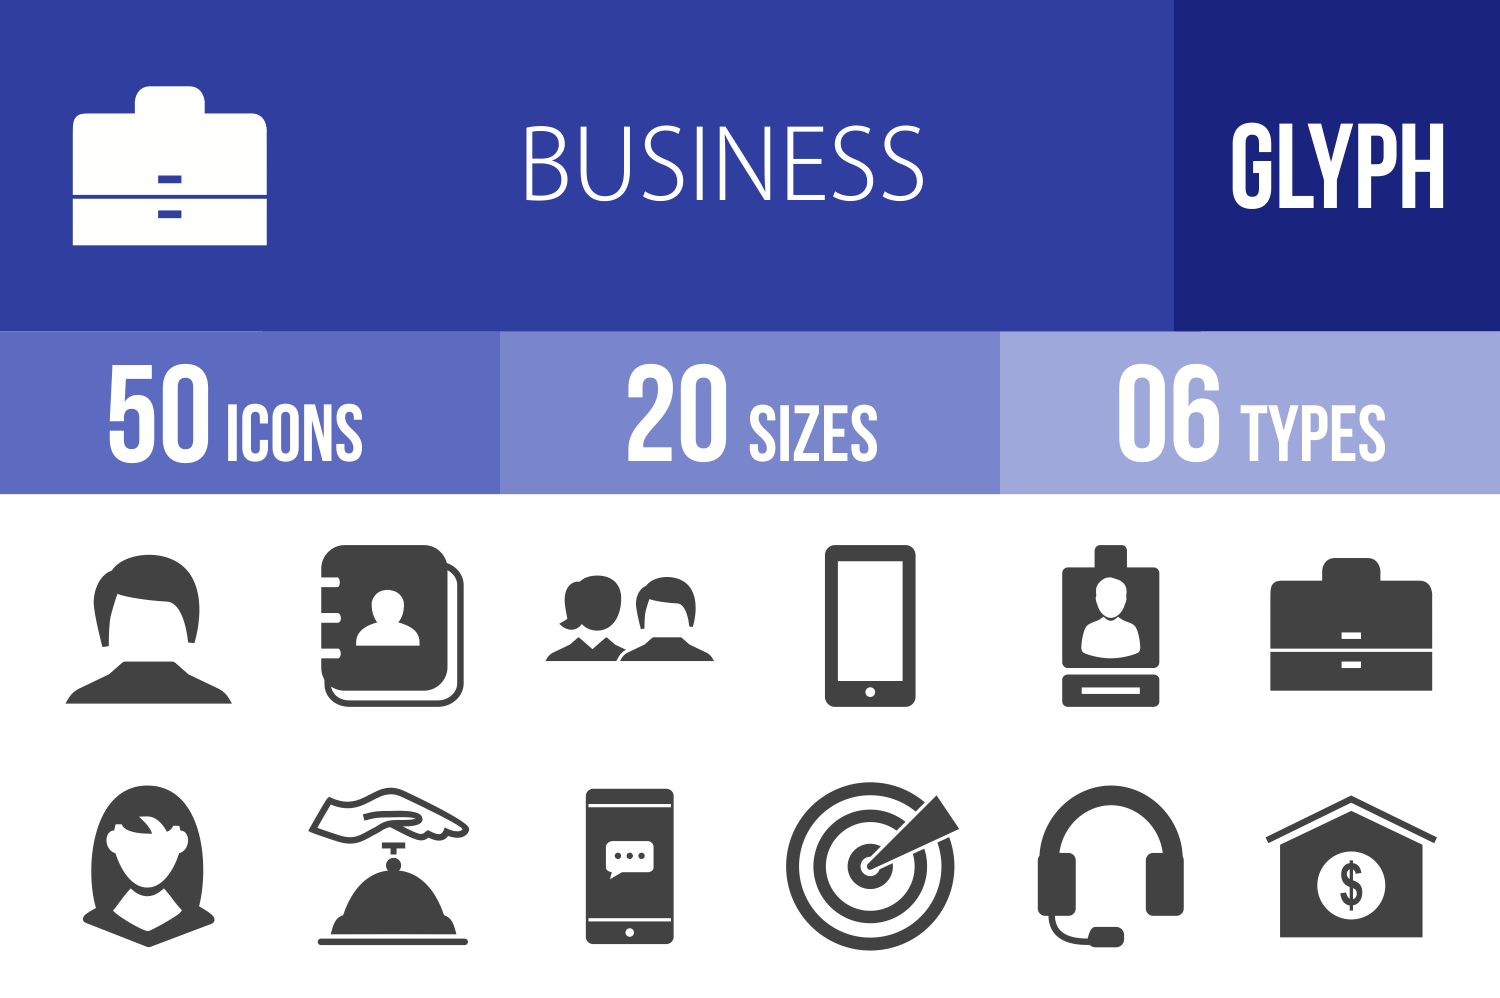 50 Business Administration Glyph Icons example image 1